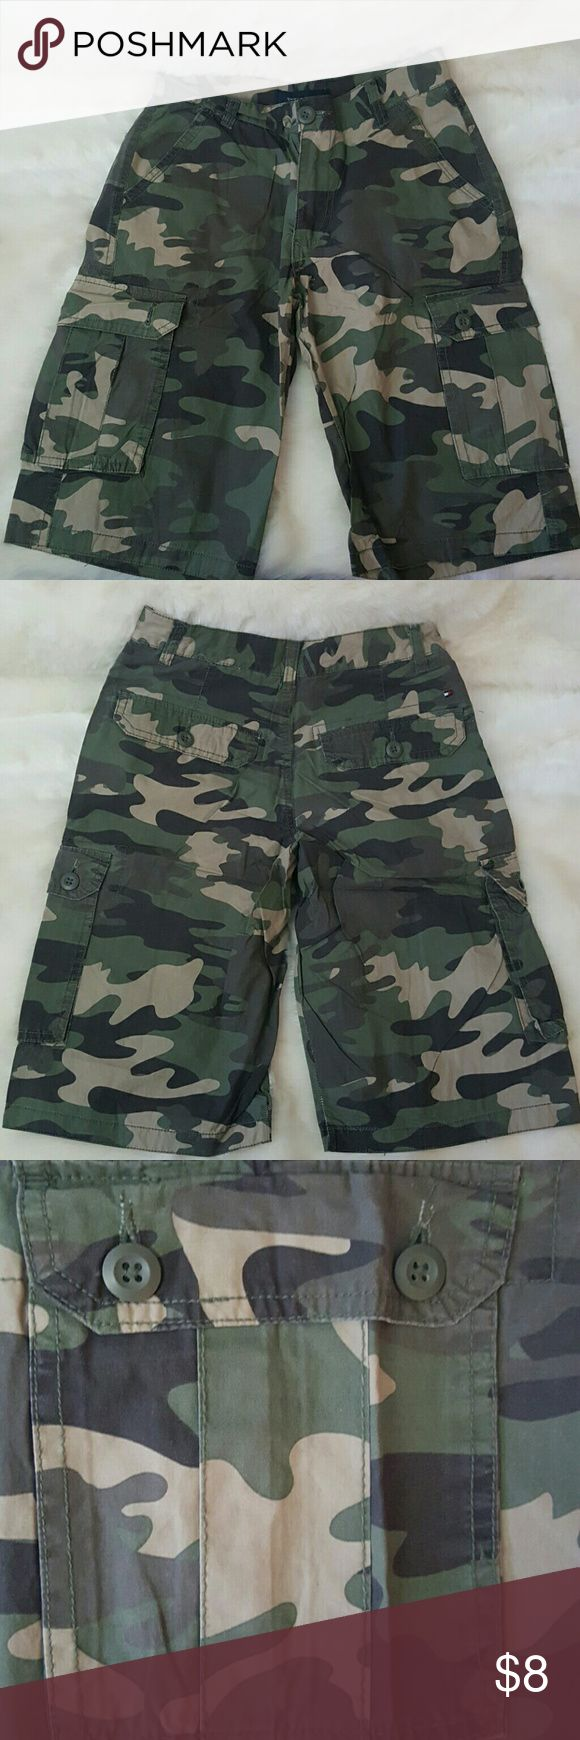 Tommy Hilflger boys camouflage shorts All my prices are negotiable!!! Boys cargo shorts Tommy Hilfiger Bottoms Shorts